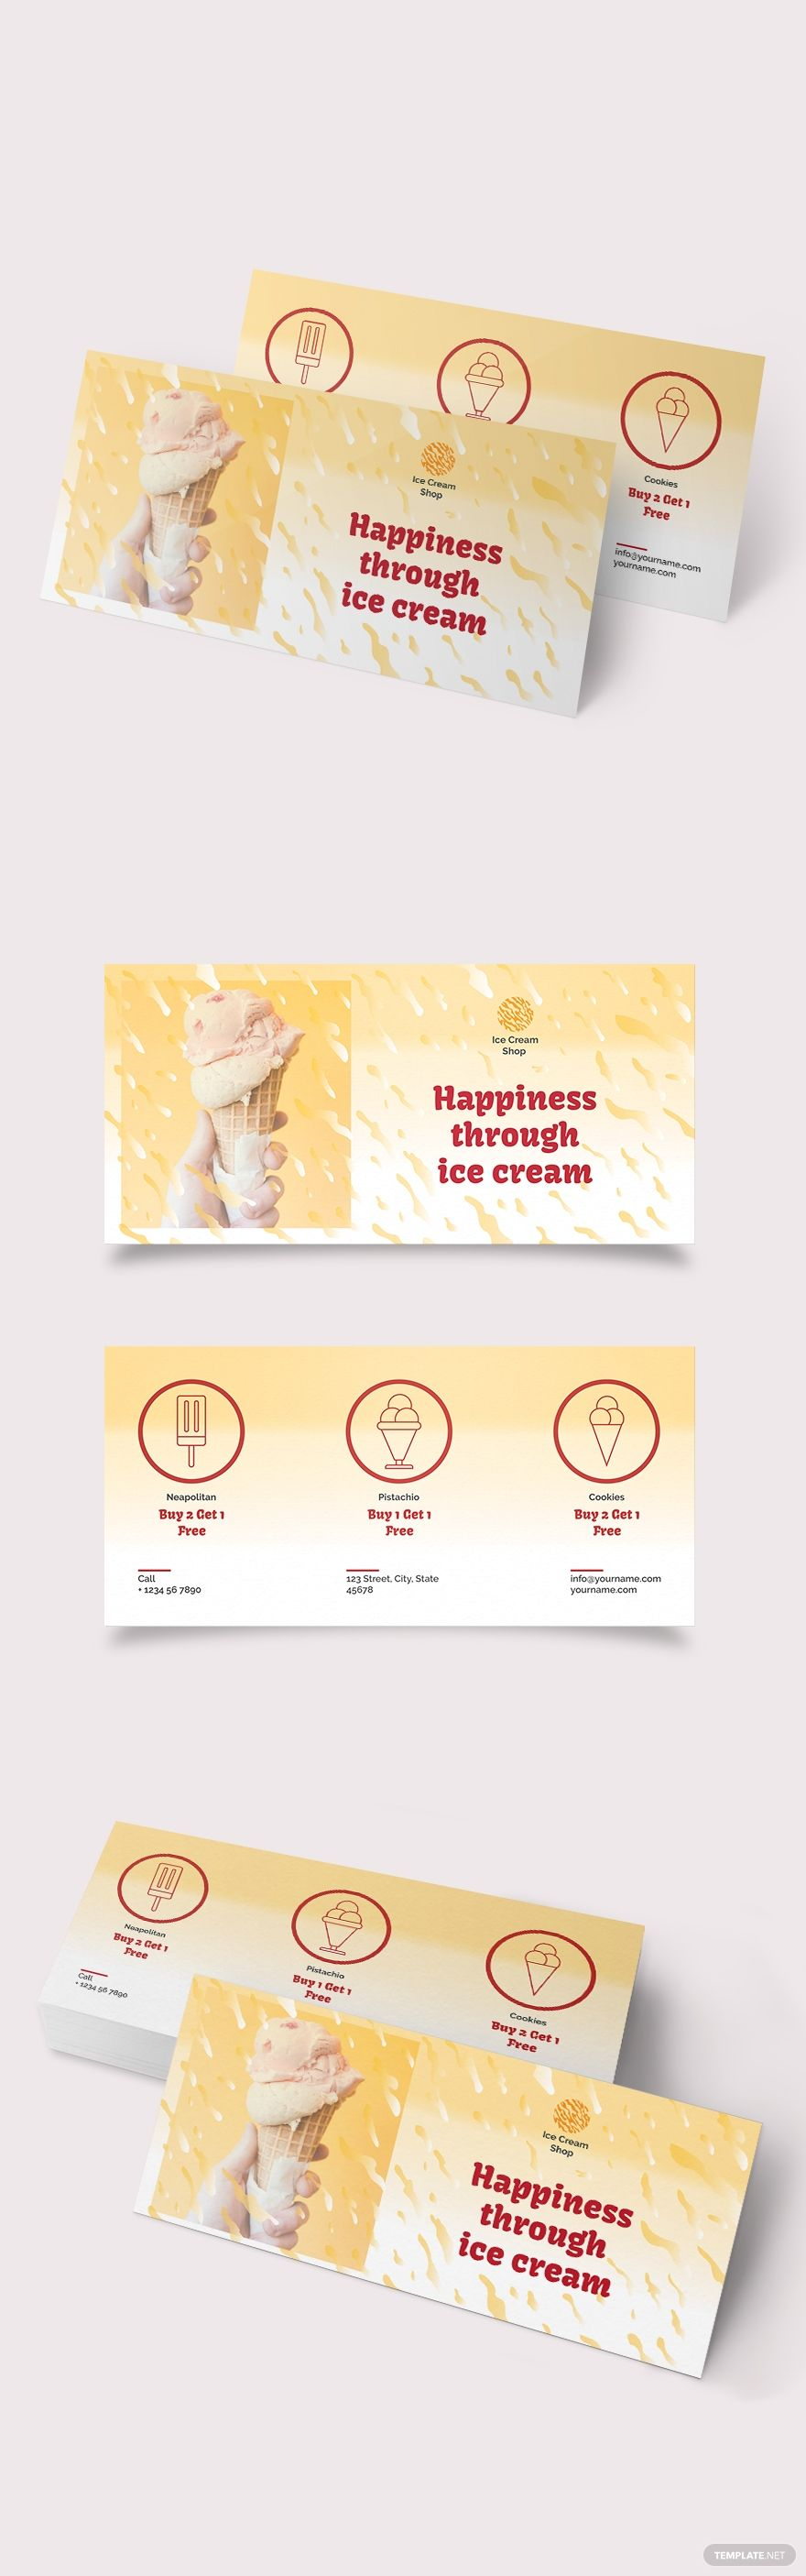 Ice Cream Coupon Template In 2020 Ice Cream Coupons Coupon Template Ice Cream